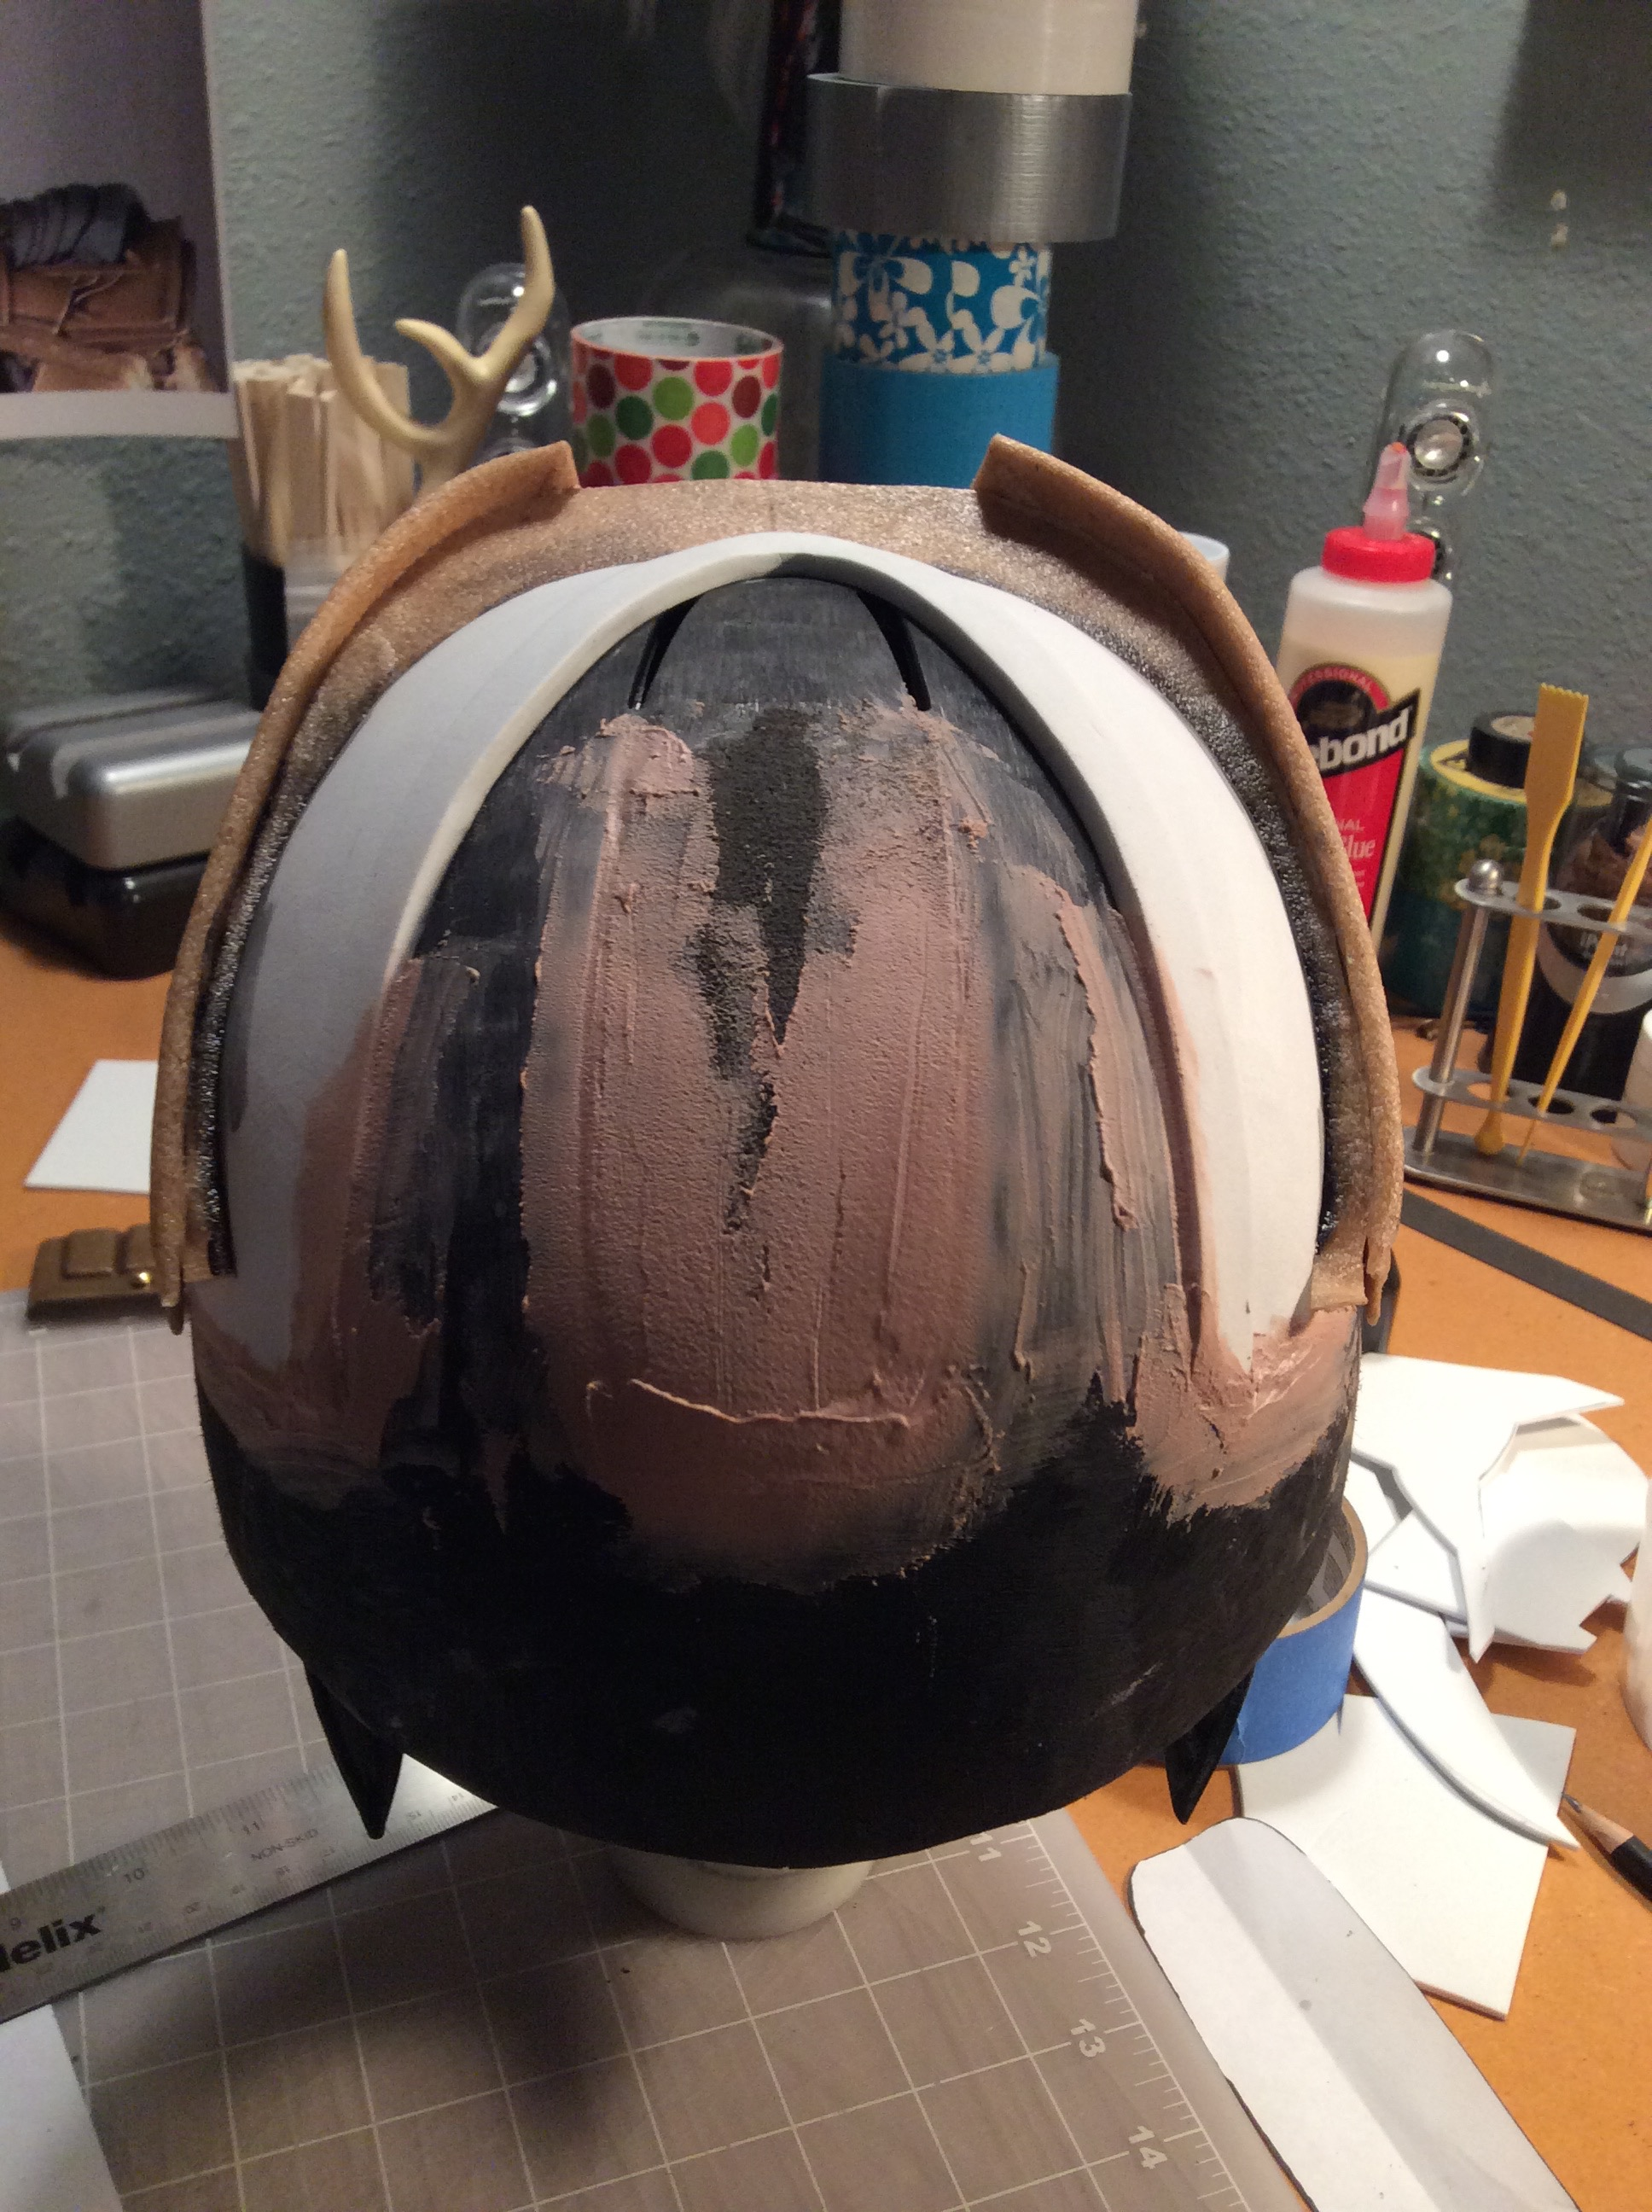 I covered the vents covered with craft foam/Worbla and Bondo. The white piece is craft foam.